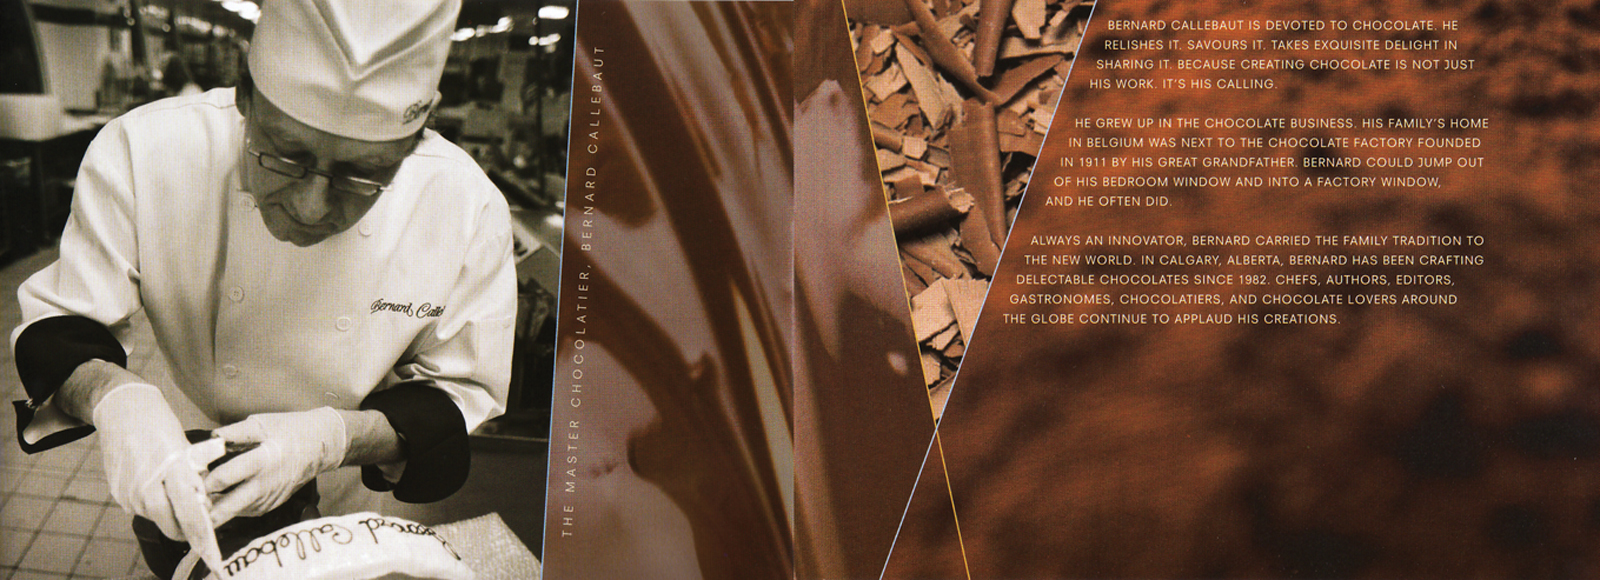 Callebaut product brochure